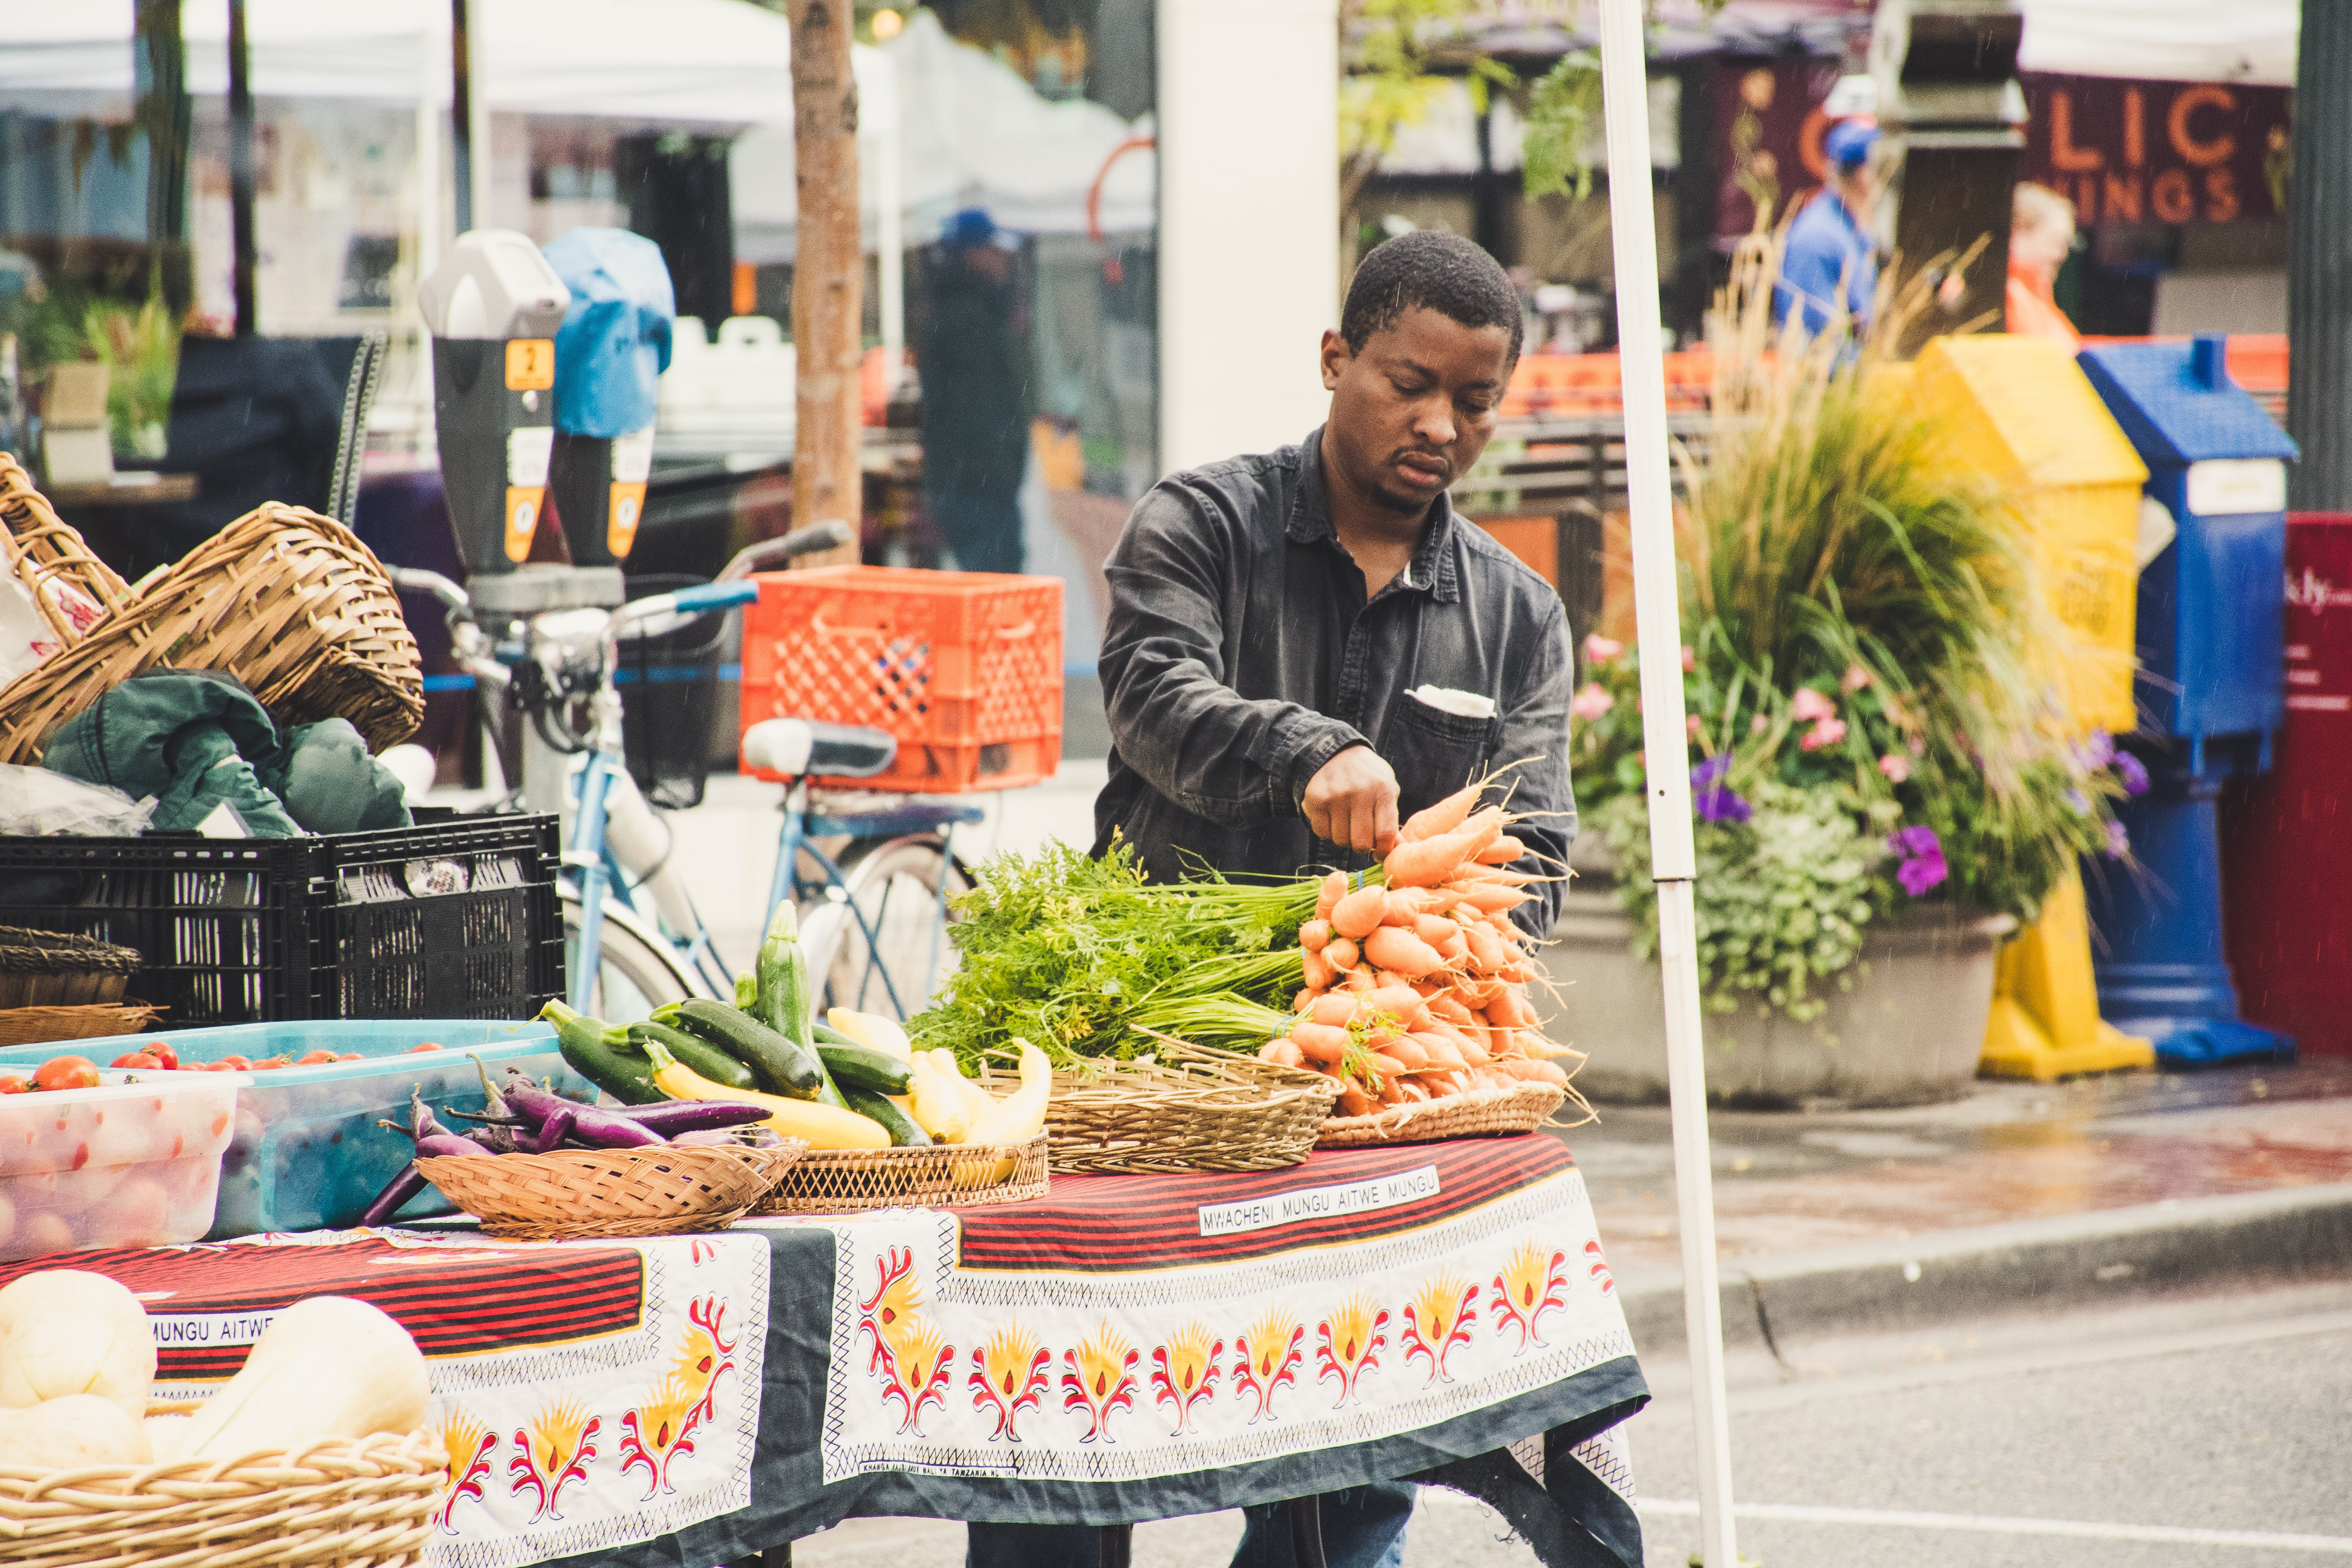 Man Standing Beside Table With Vegetables Near Buildings